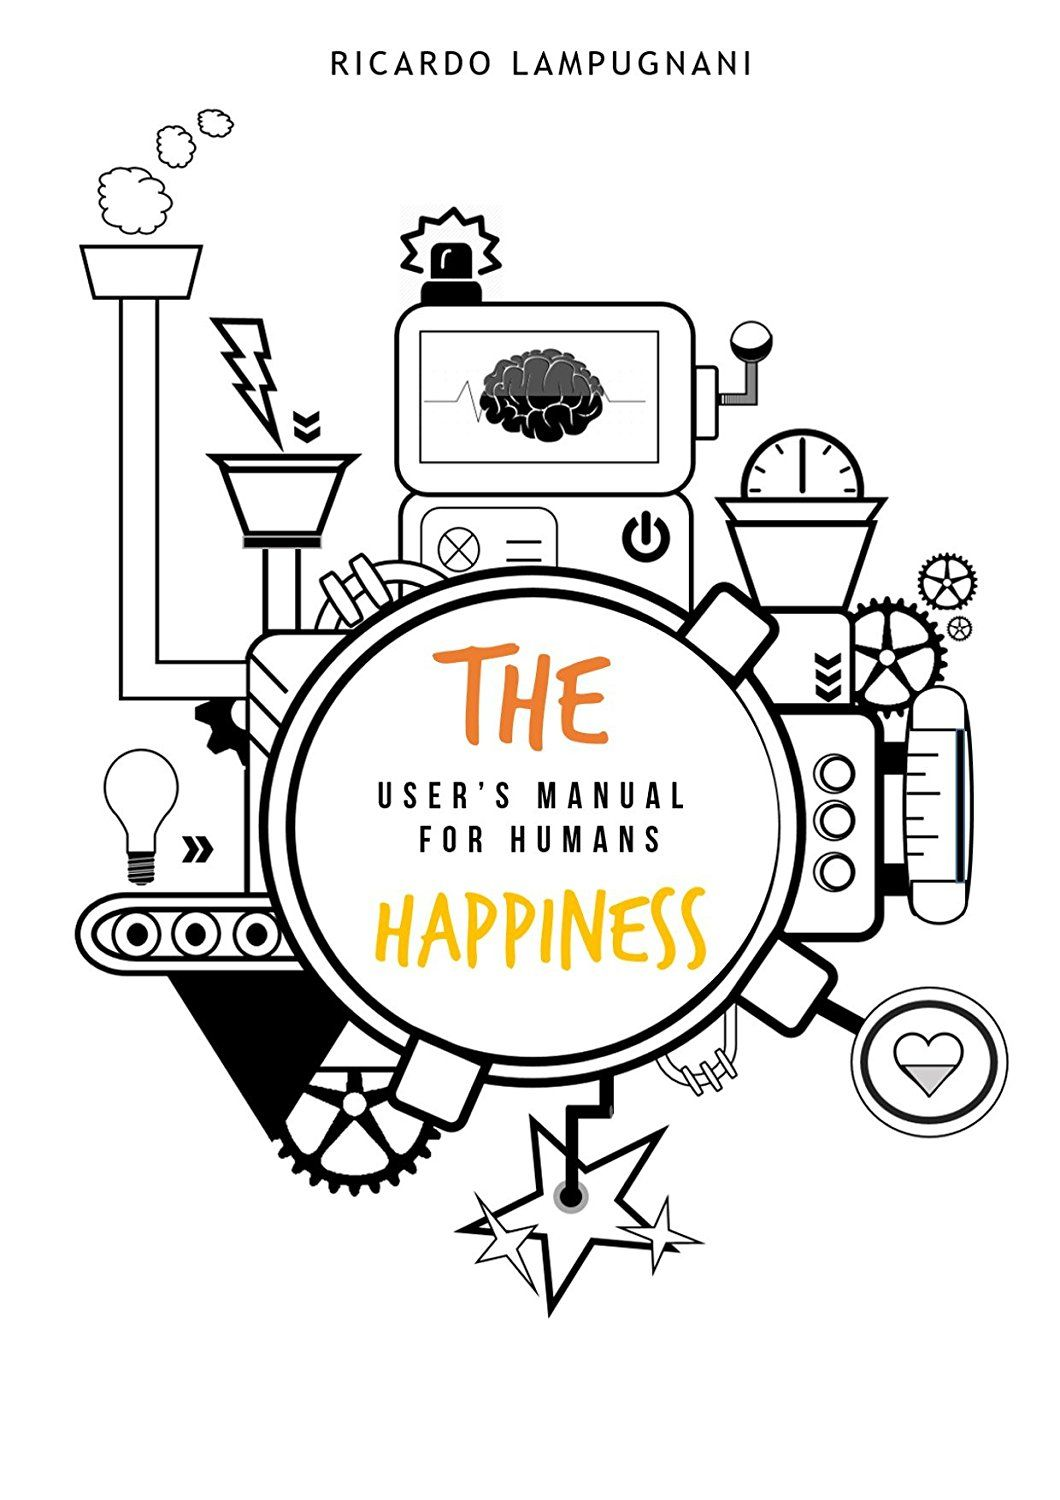 The Happiness. User's manual for humans: An awesome book